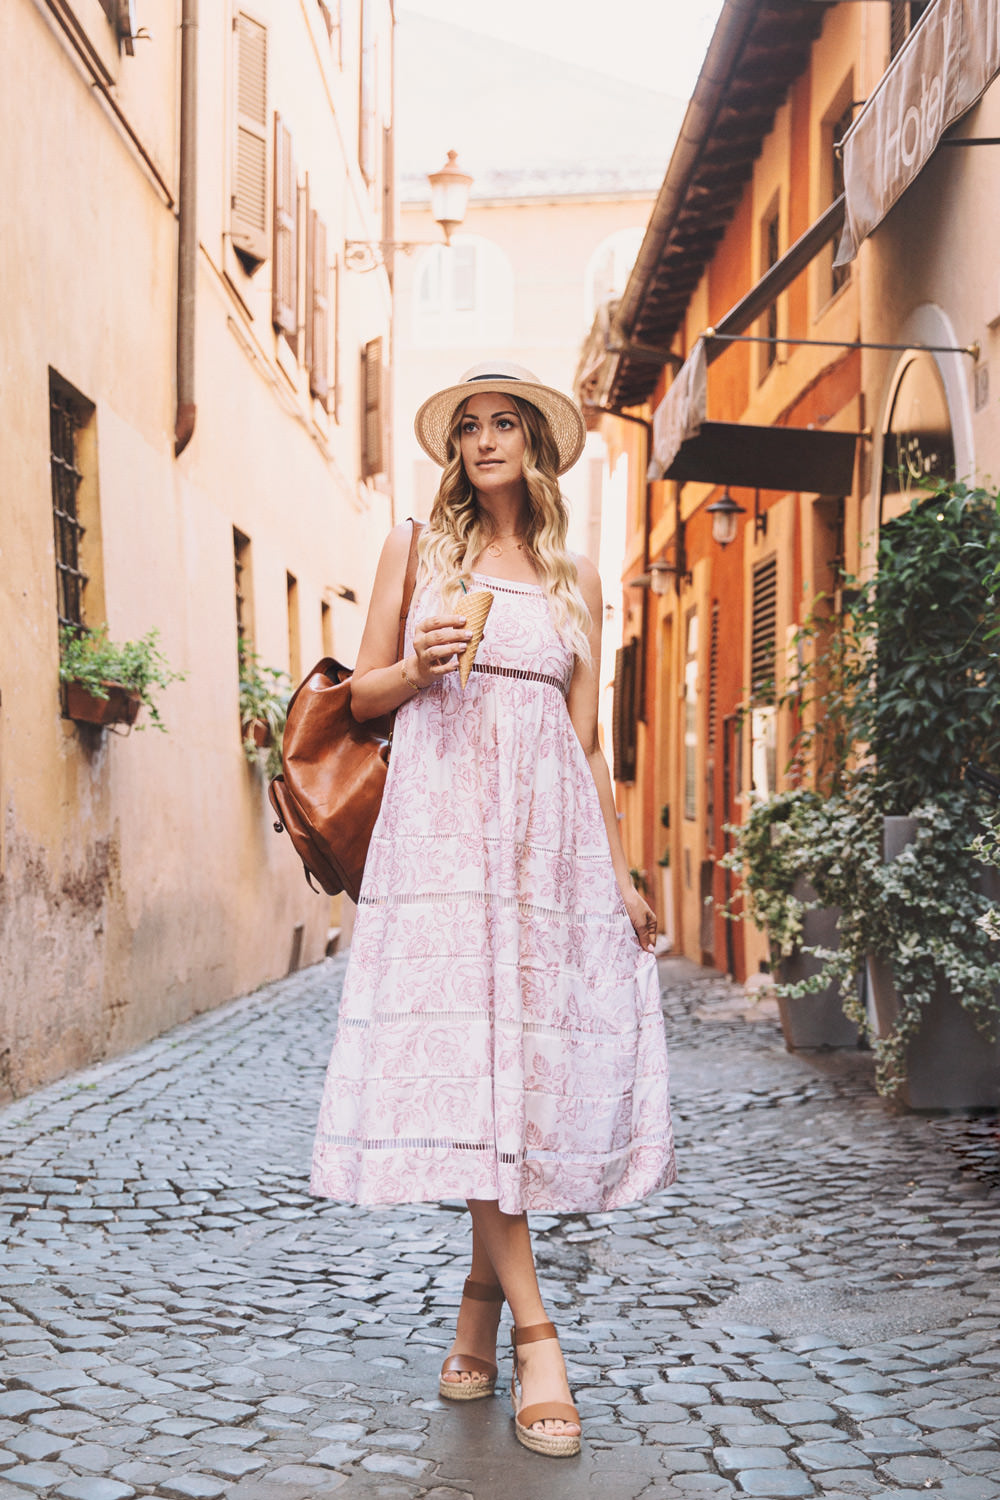 Caitlin Lindquist of Dash of Darling shares a photo diary of her visit to Rome, Italy and the colosseum.